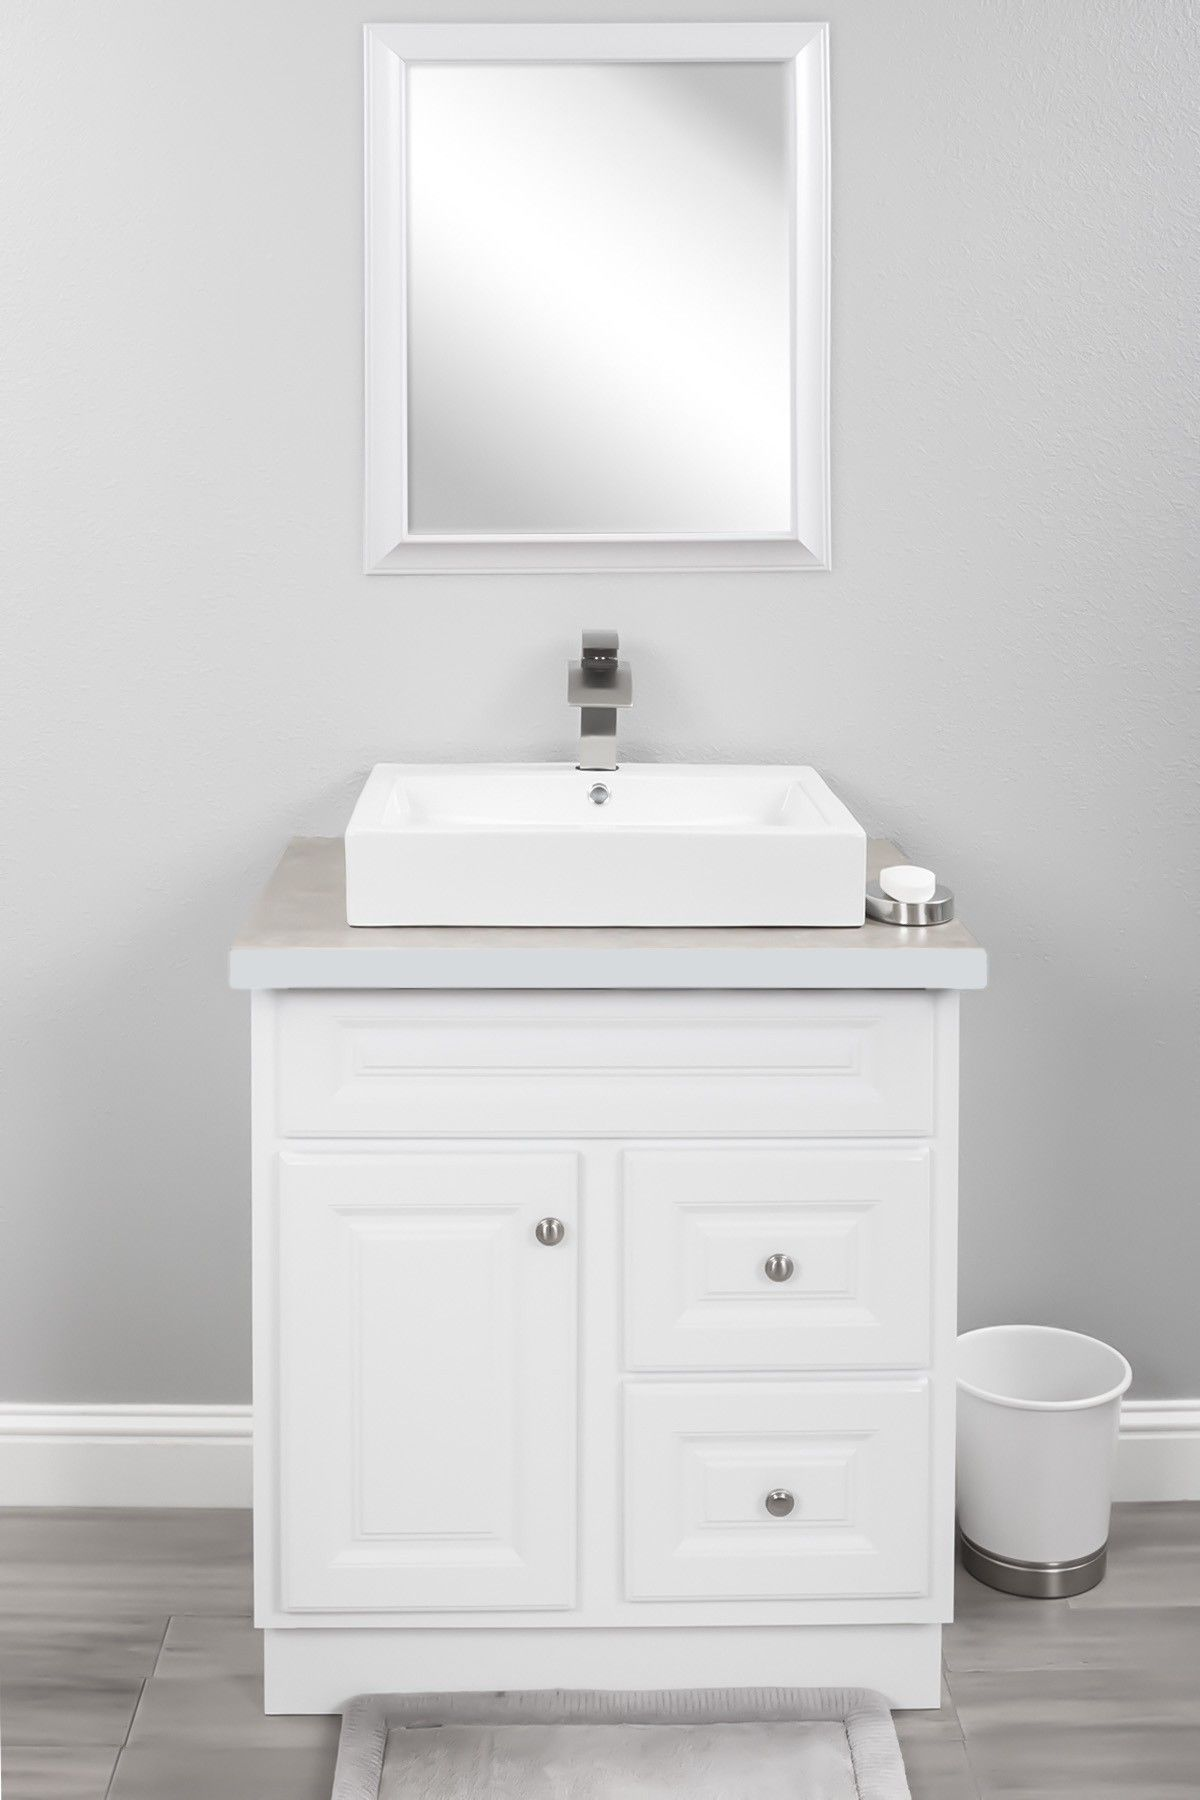 Novatto Porcelain Vessel Sink Combo With Brushed Nickel Faucet